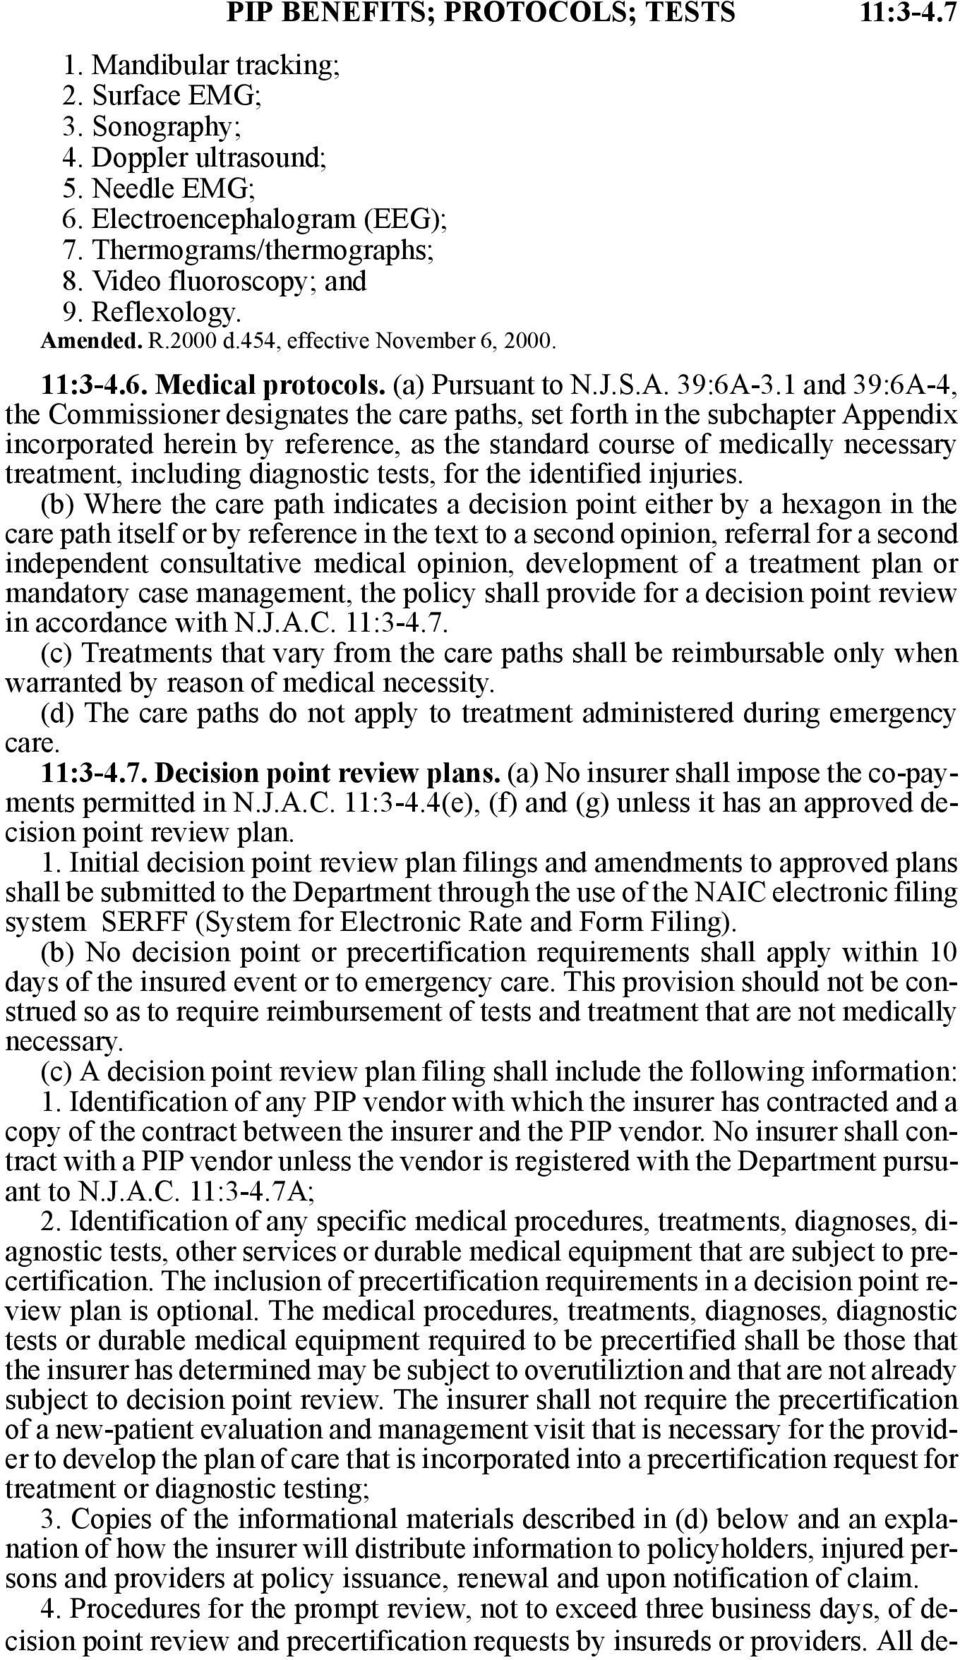 1 and 39:6A-4, the Commissioner designates the care paths, set forth in the subchapter Appendix incorporated herein by reference, as the standard course of medically necessary treatment, including